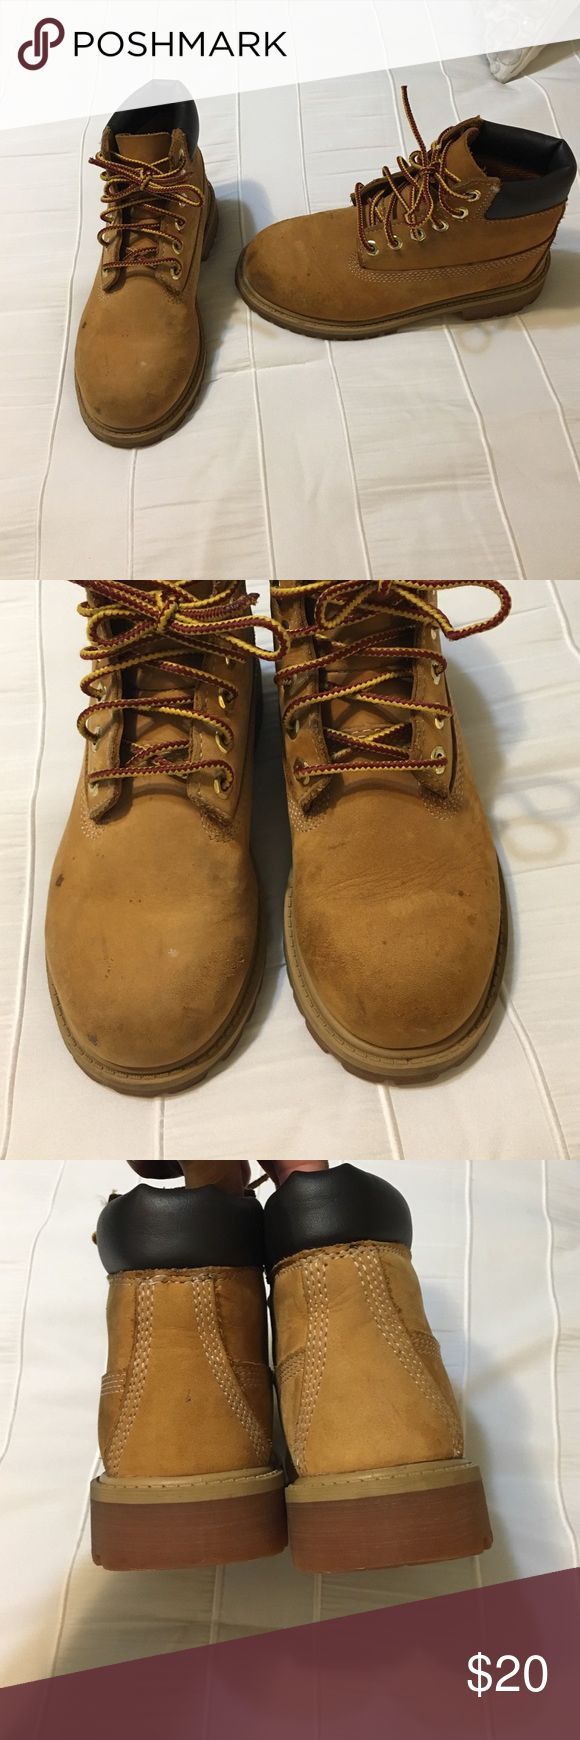 78 ideas about timberland boots on cheap